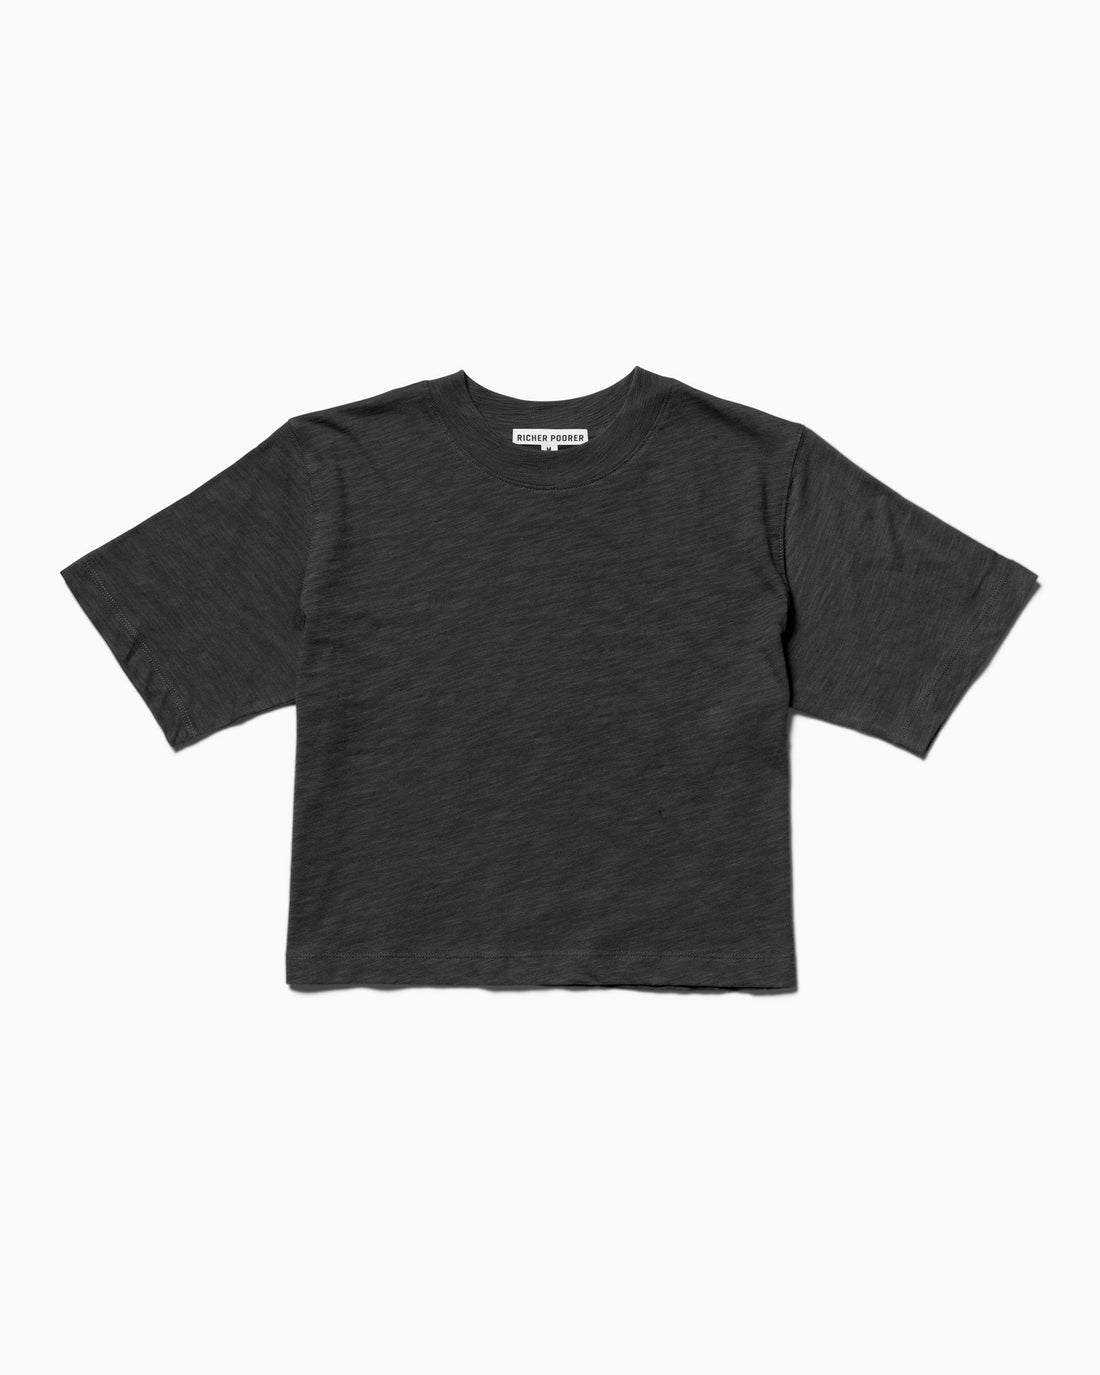 Richer Poorer Inc Grown Up Crop Top - Tops - Iron and Resin